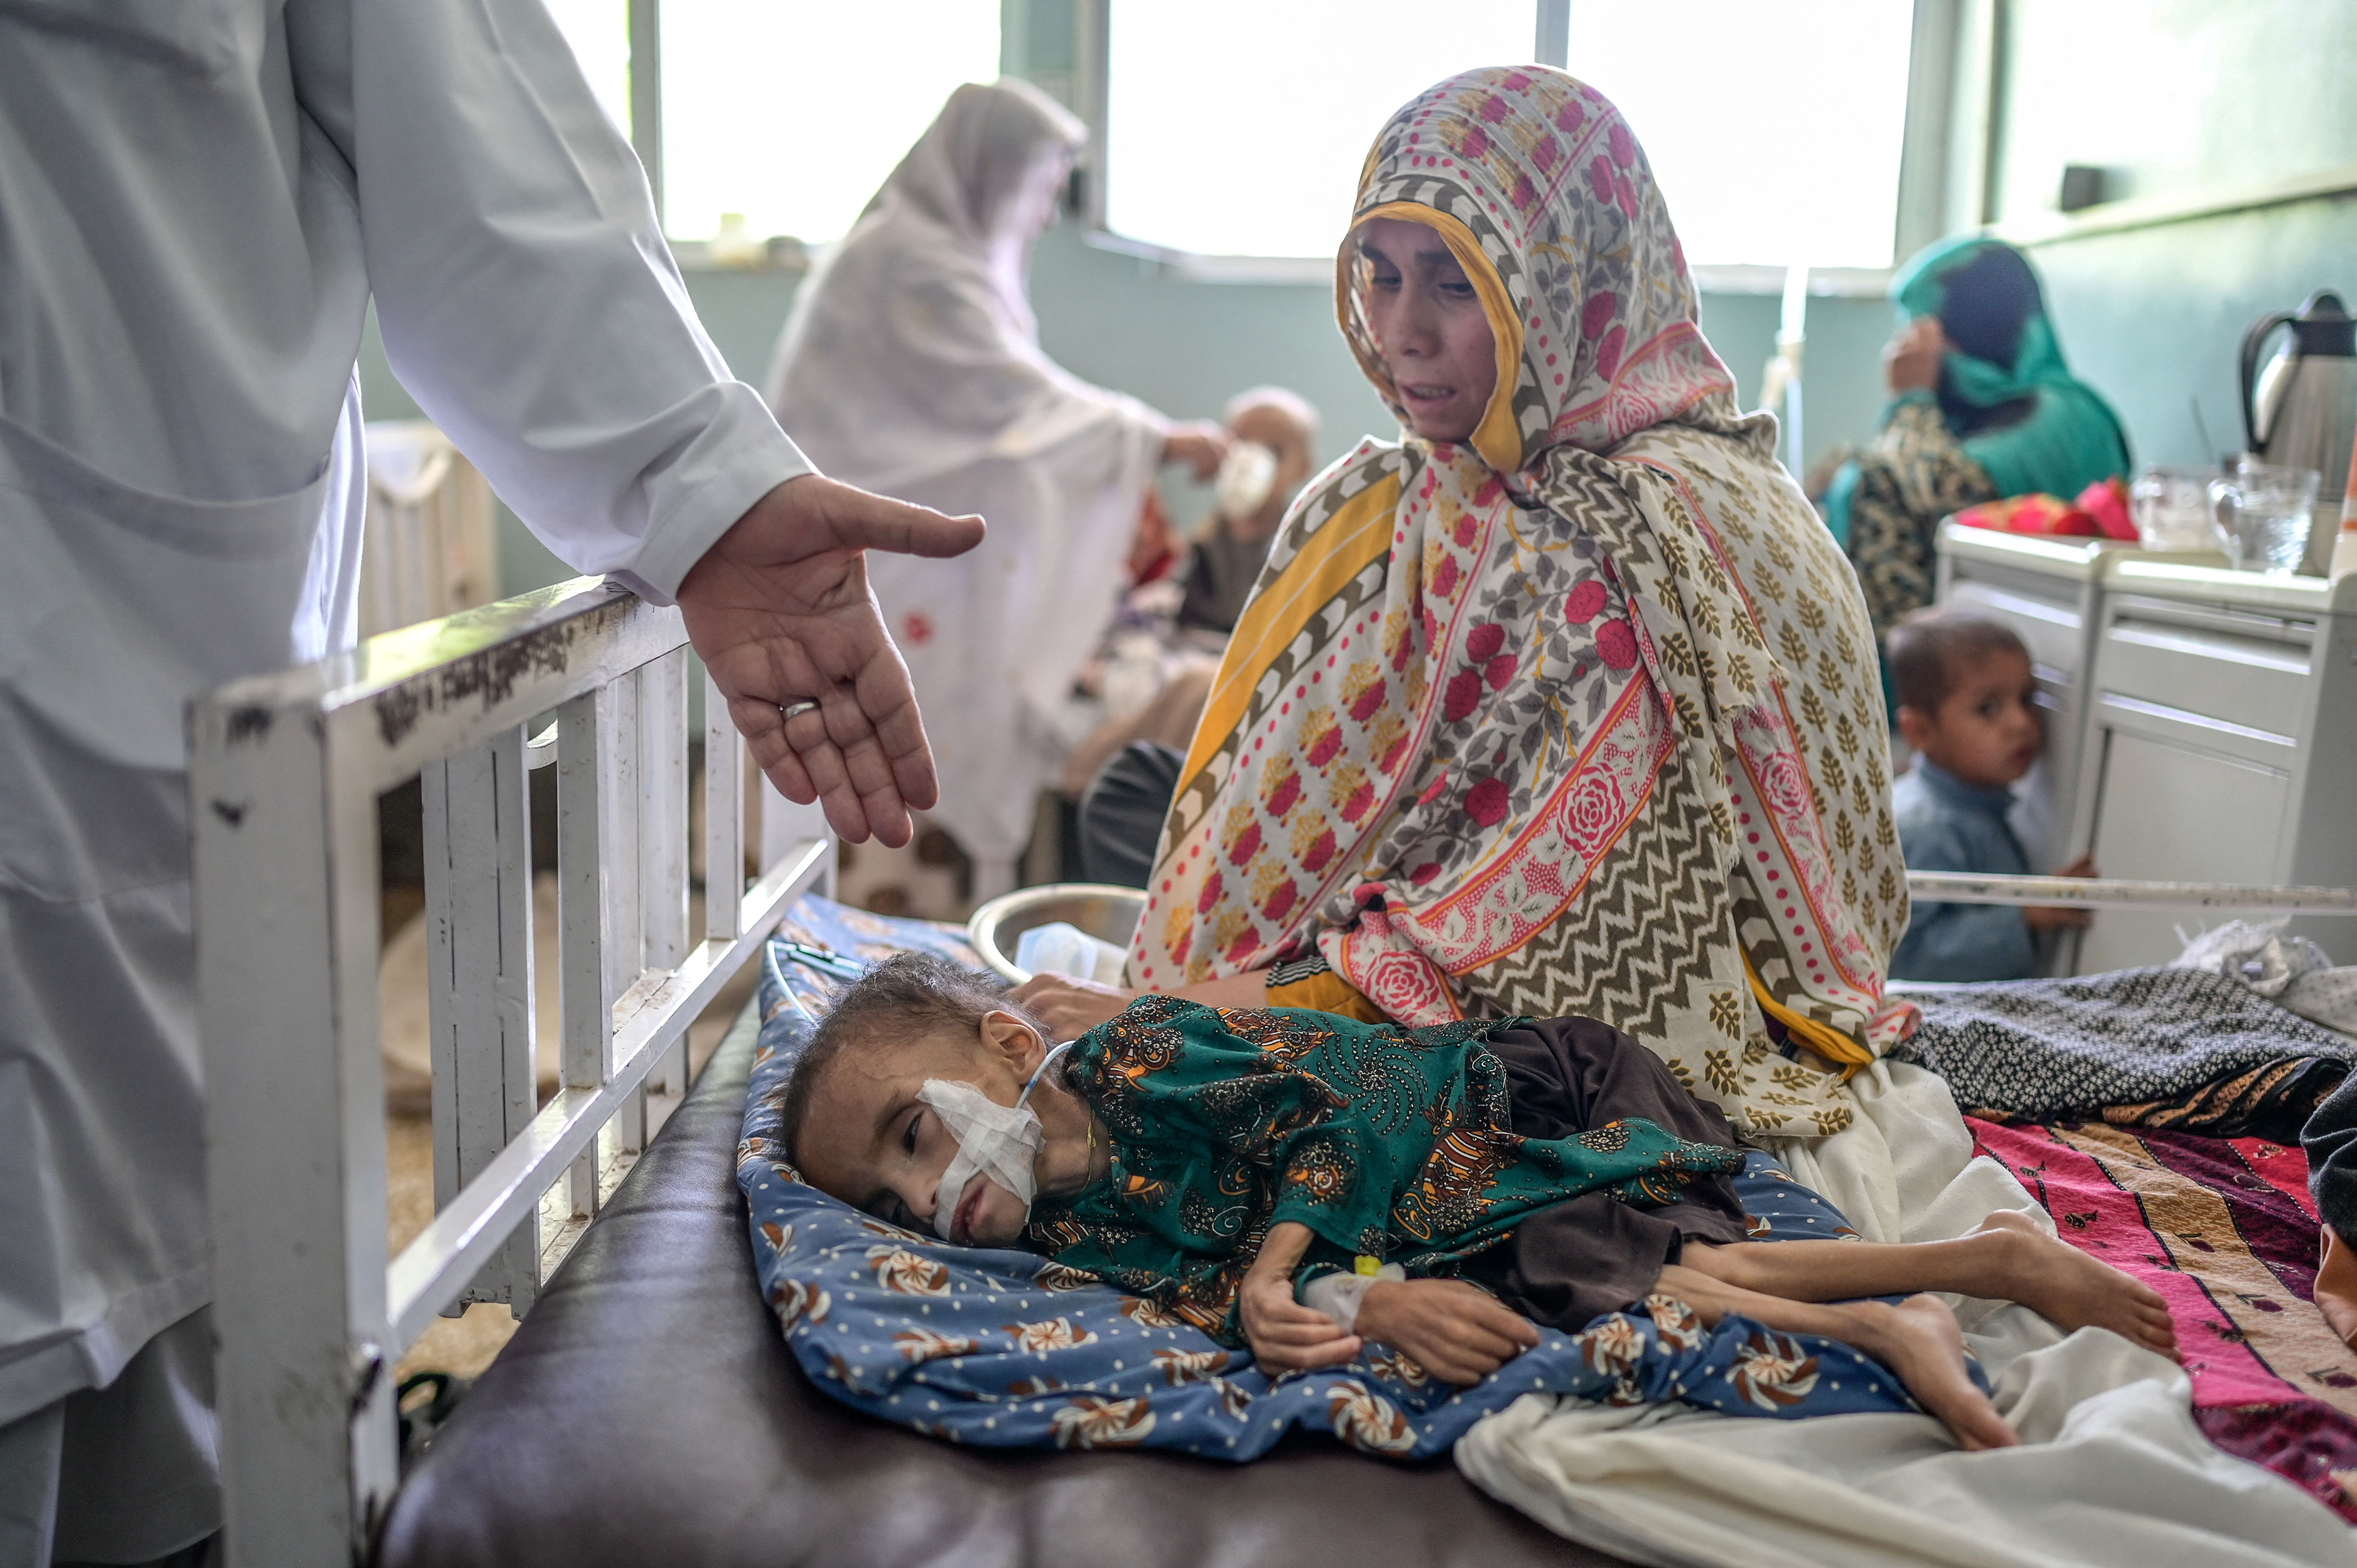 A child suffering from malnutrition receives treatment at the Mirwais hospital in Kandahar on September 27, 2021. - (Photo by BULENT KILIC/AFP via Getty Images)